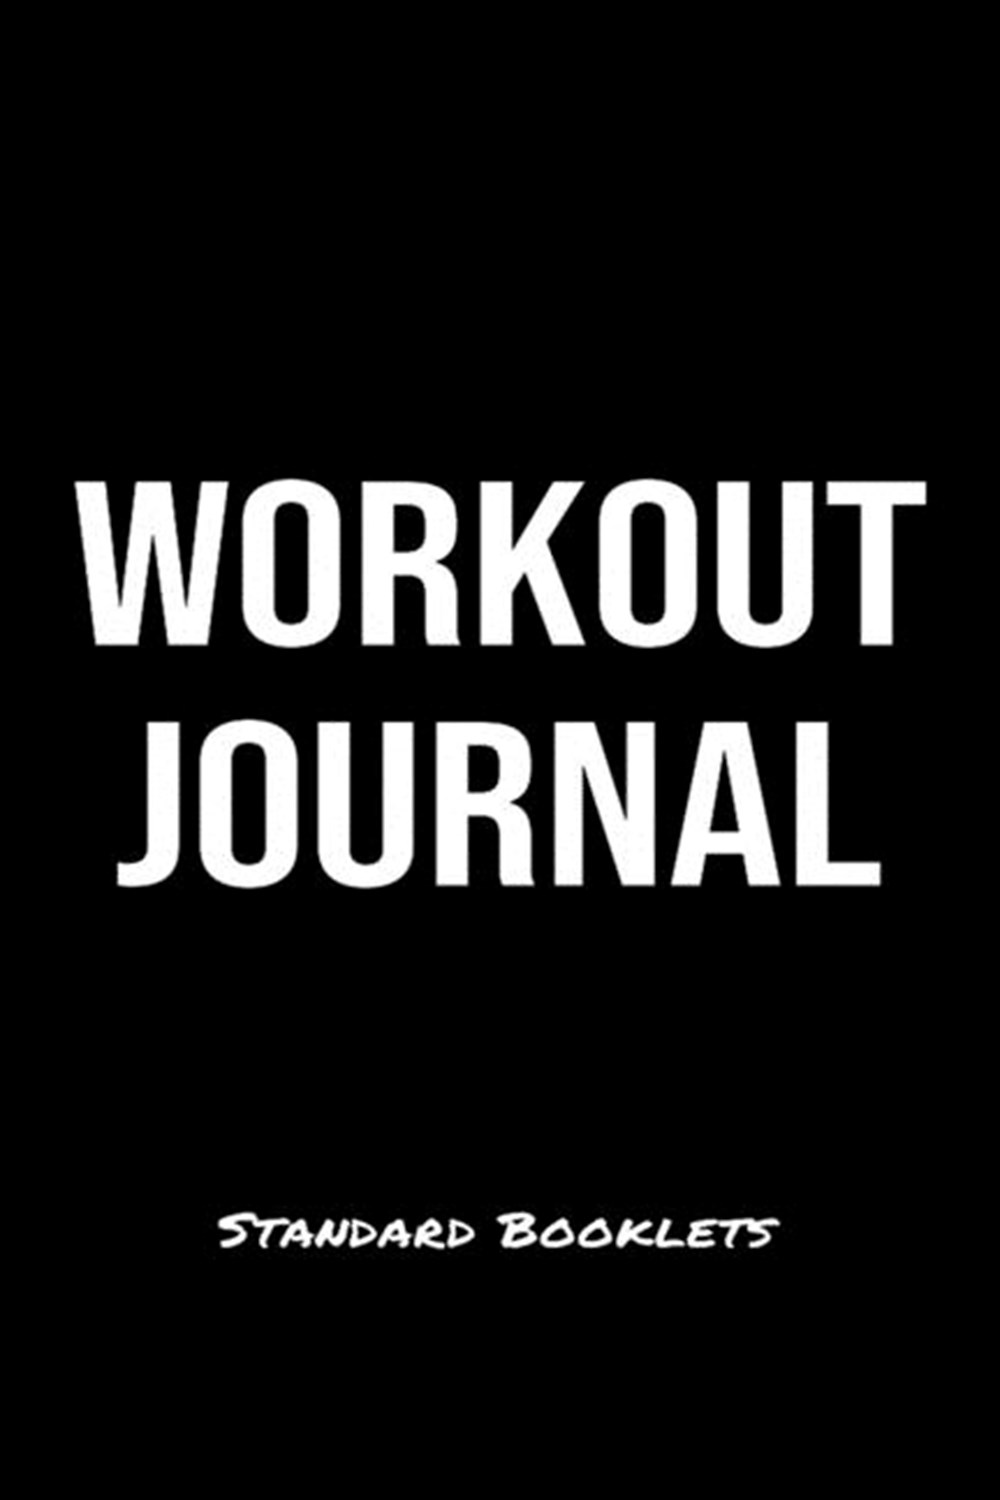 Workout Journal Standard Booklets A softcover fitness tracker to record five exercises for five days